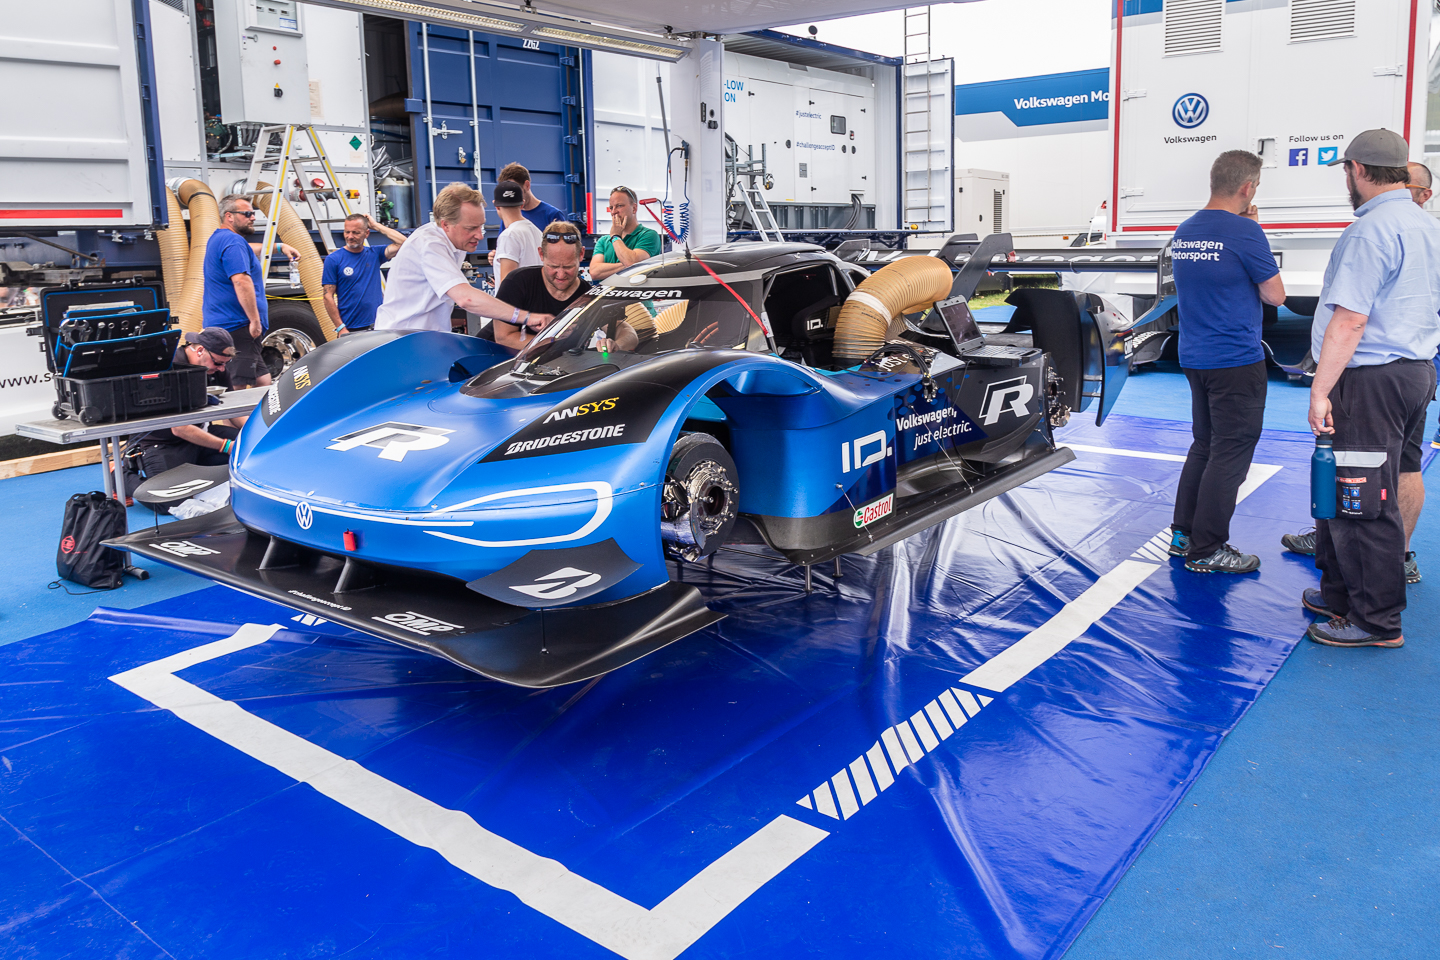 Blue Volkswagen all electric IDR Pikes Peak race car